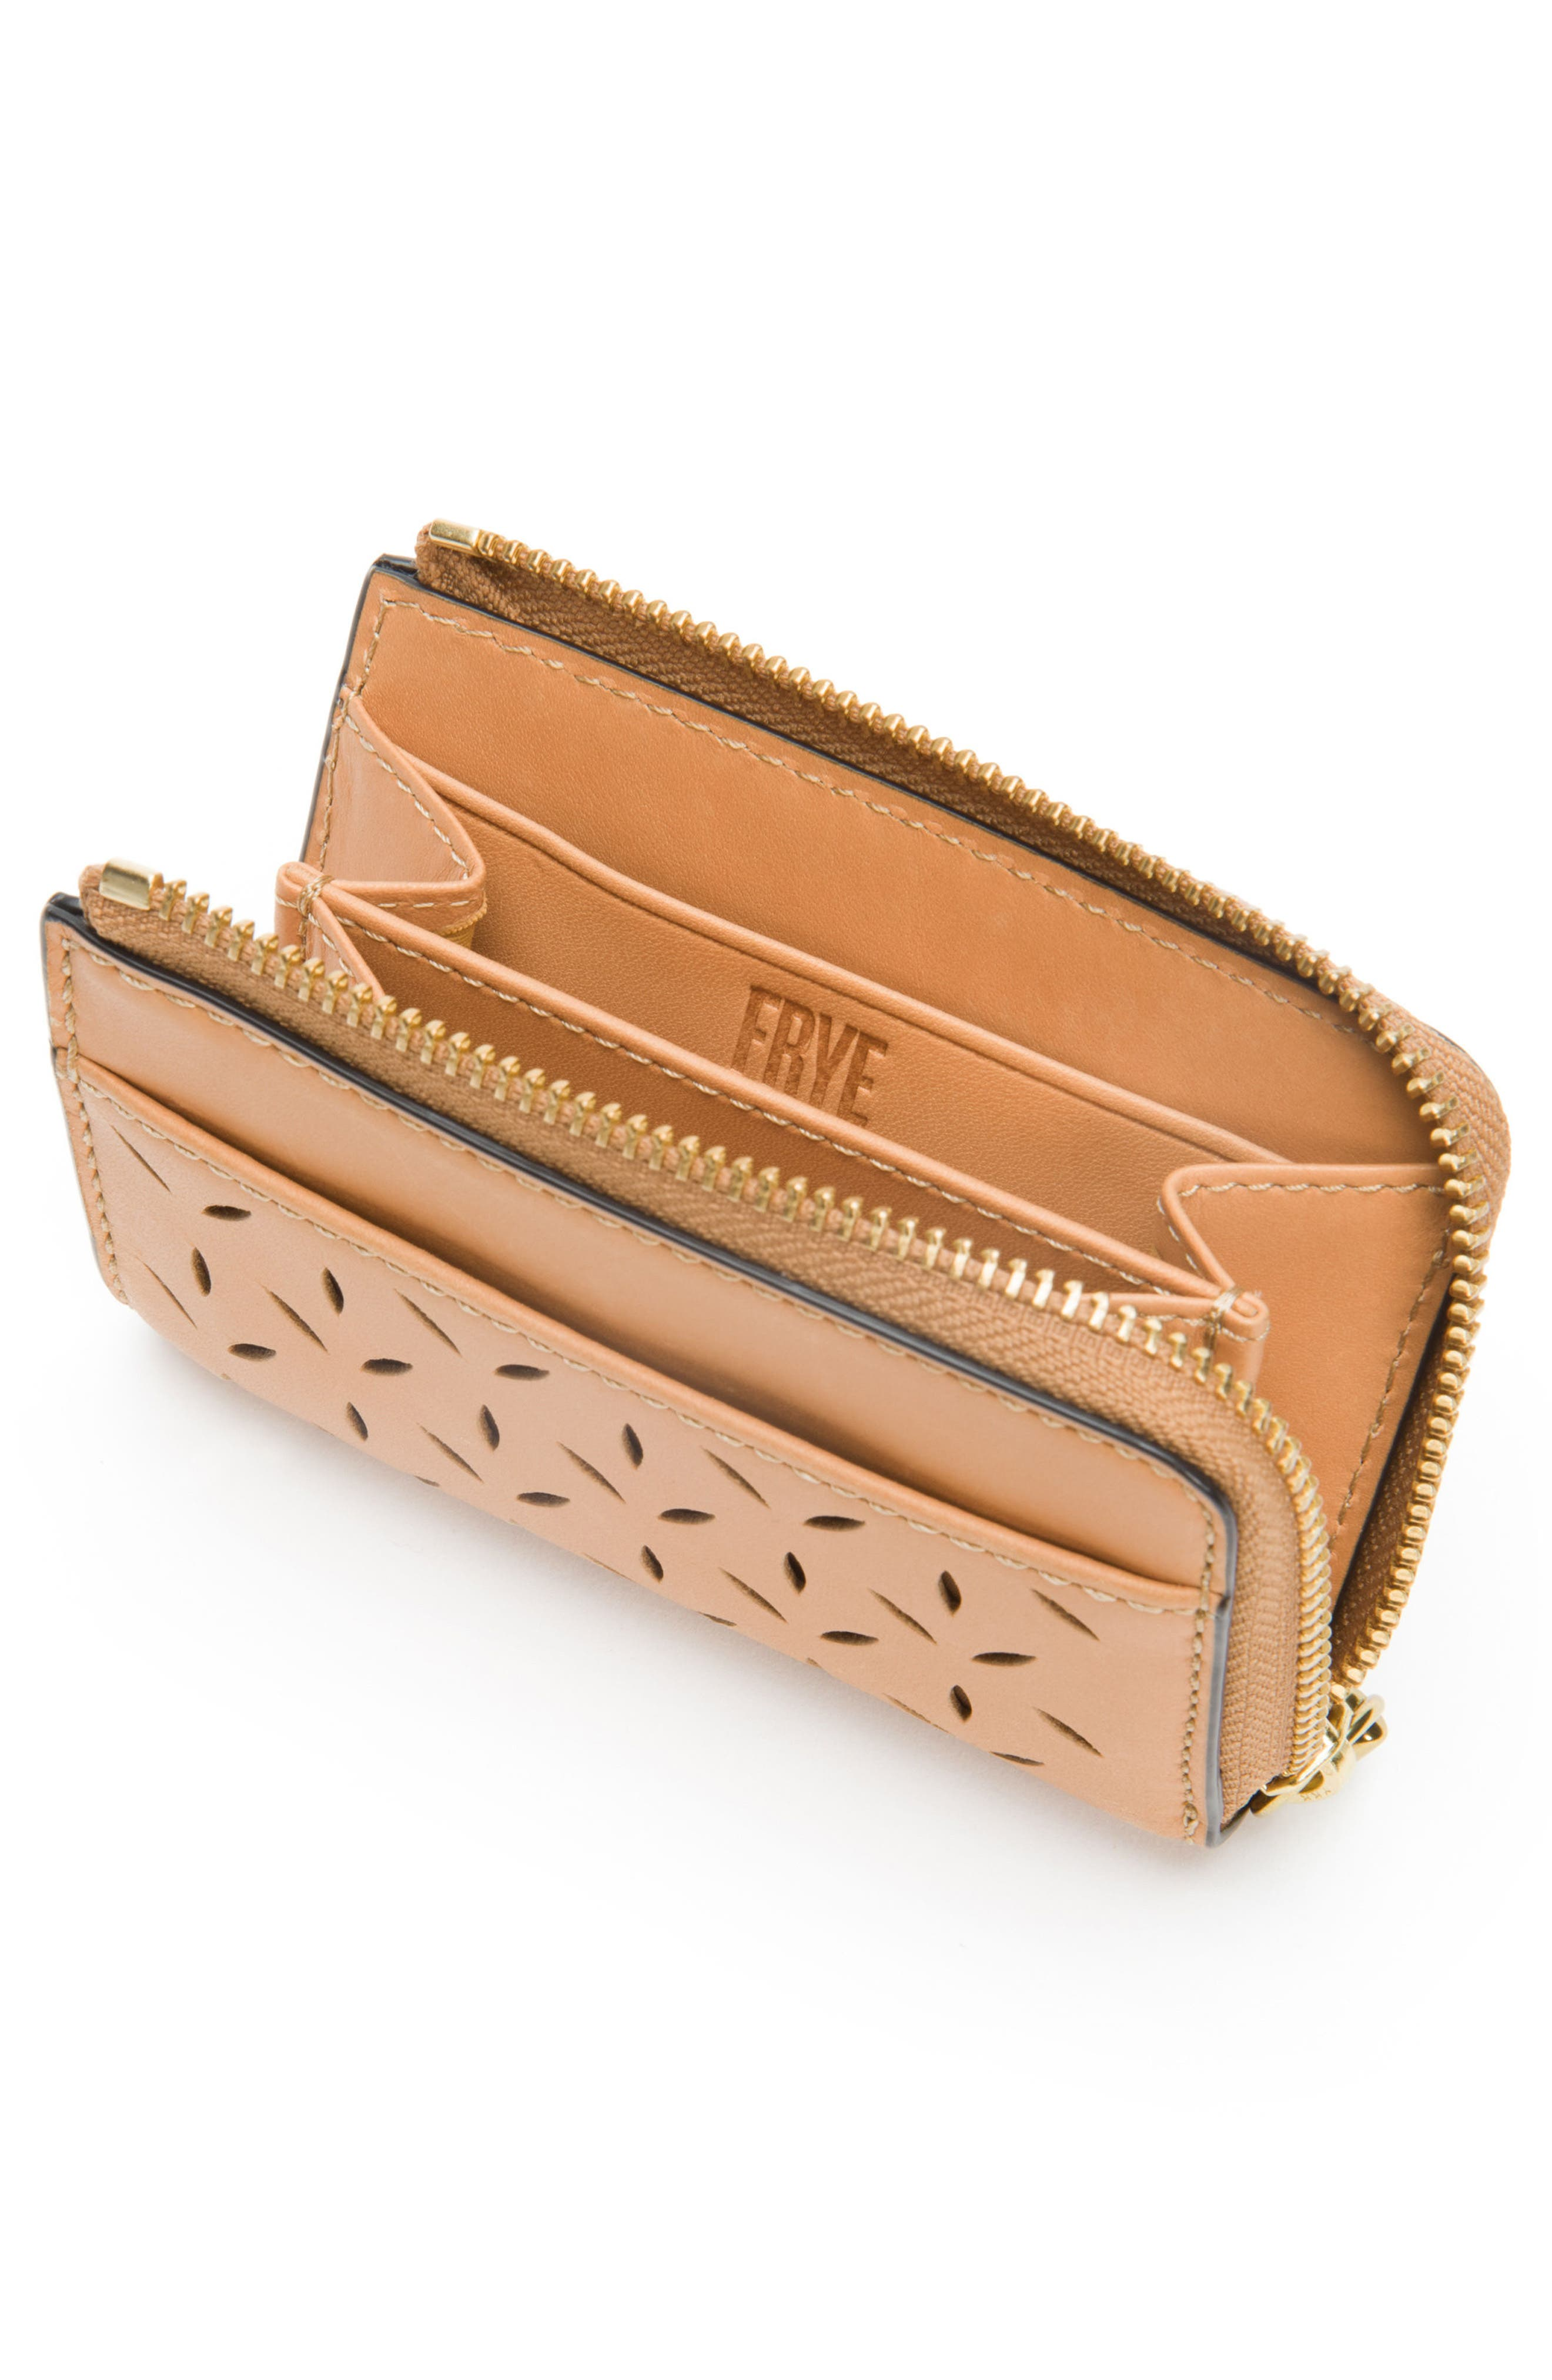 Ilana Small Perforated Leather Zip Wallet,                             Alternate thumbnail 2, color,                             Light Tan